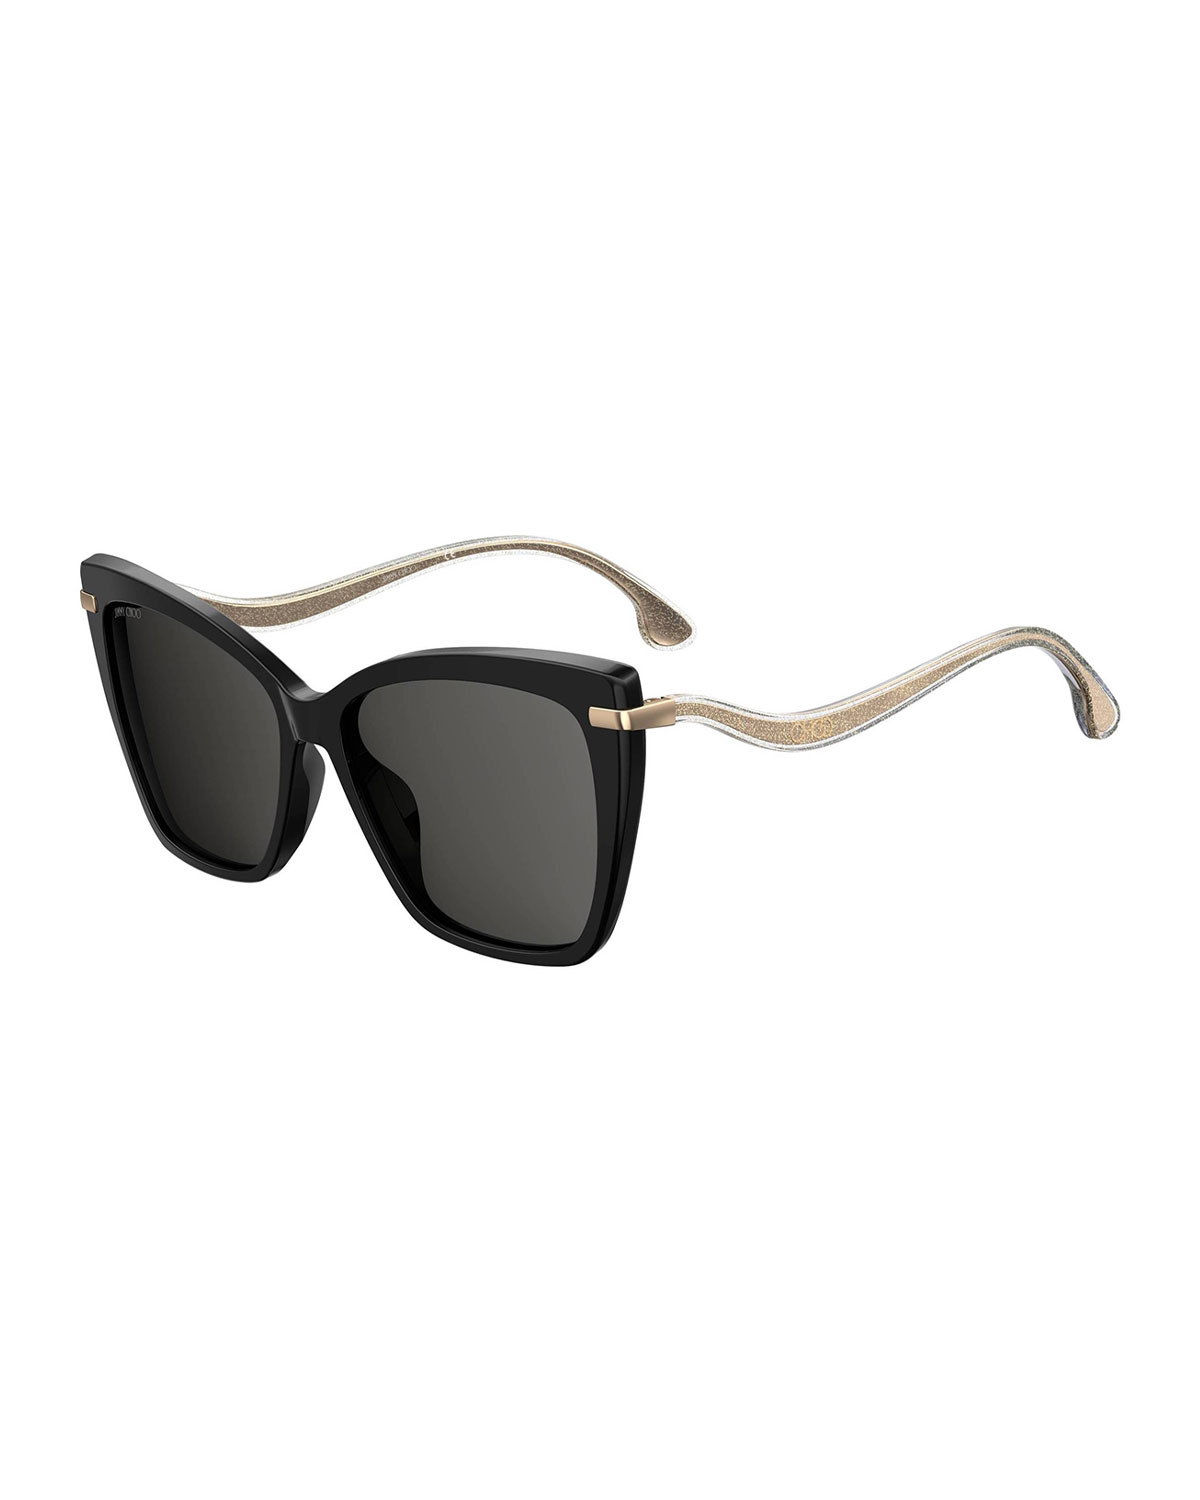 Jimmy Choo SELBY/G/S Sunglasses : SELBY/G/S Black SELBY/G